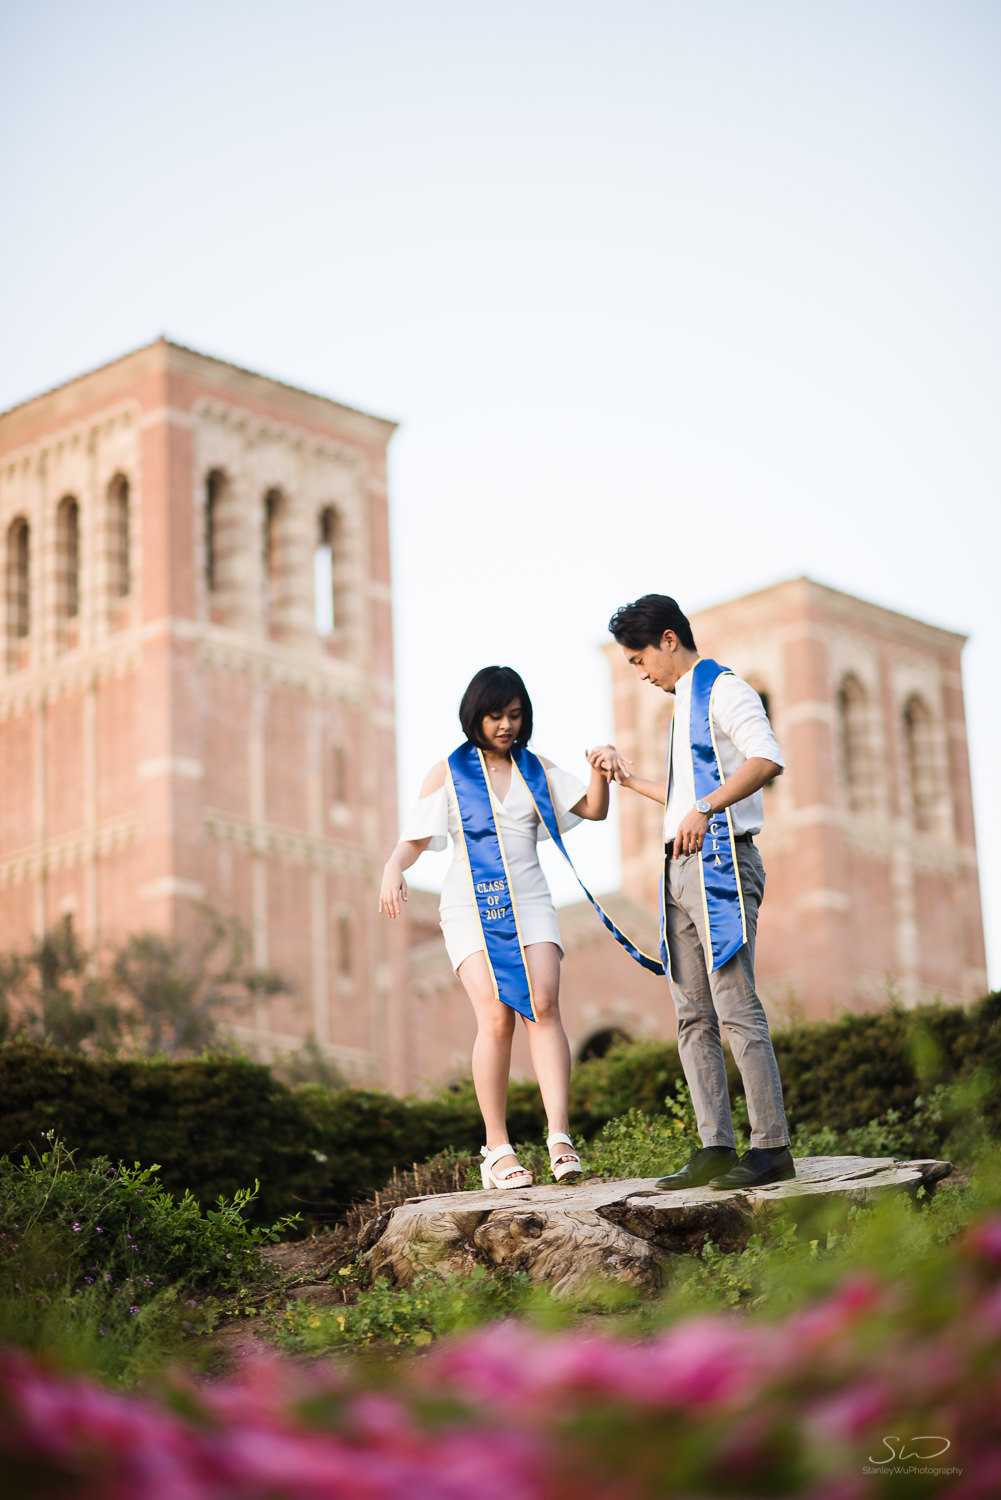 Copy of Copy of couple getting ready for a photo on a tree stump  | Stanley Wu Photography | Los Angeles | Graduation Portraits | UCLA, USC, LMU, Pepperdine, CSULA, CSUN, CSULB, UCI, UCSD